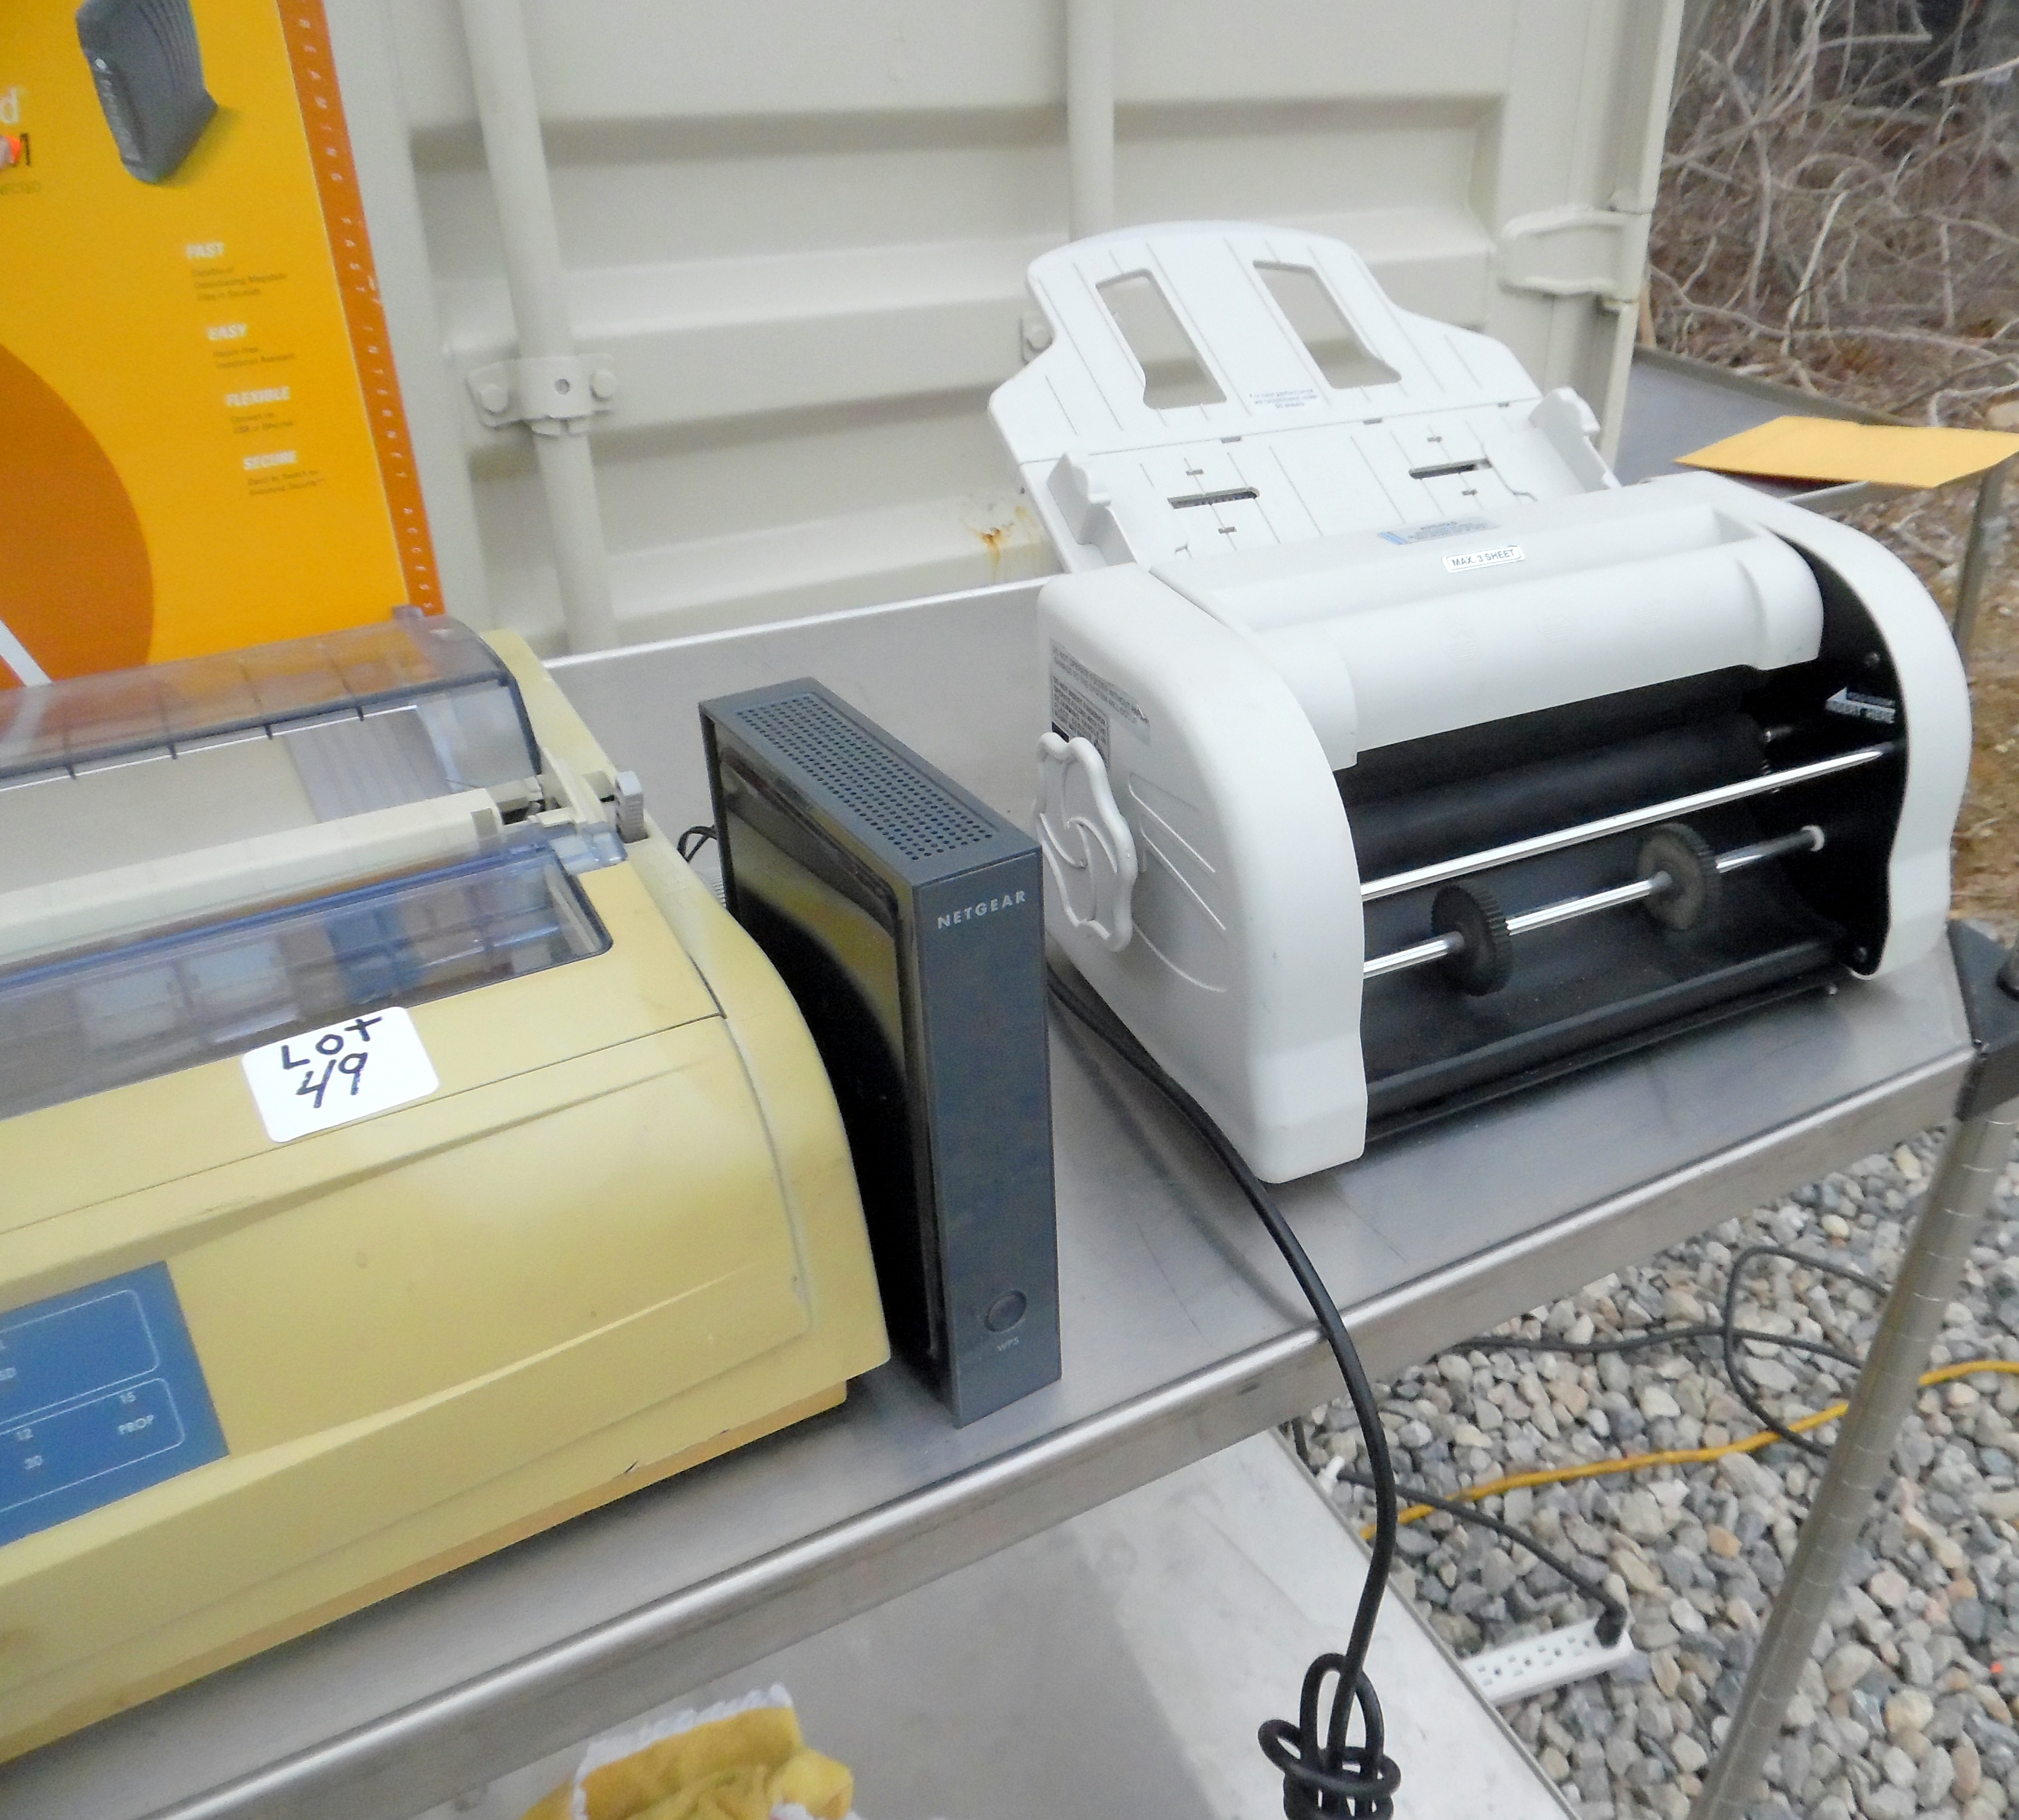 Lot 49 - Lot of office electronics consisting of Dahle 10560 paper folder,